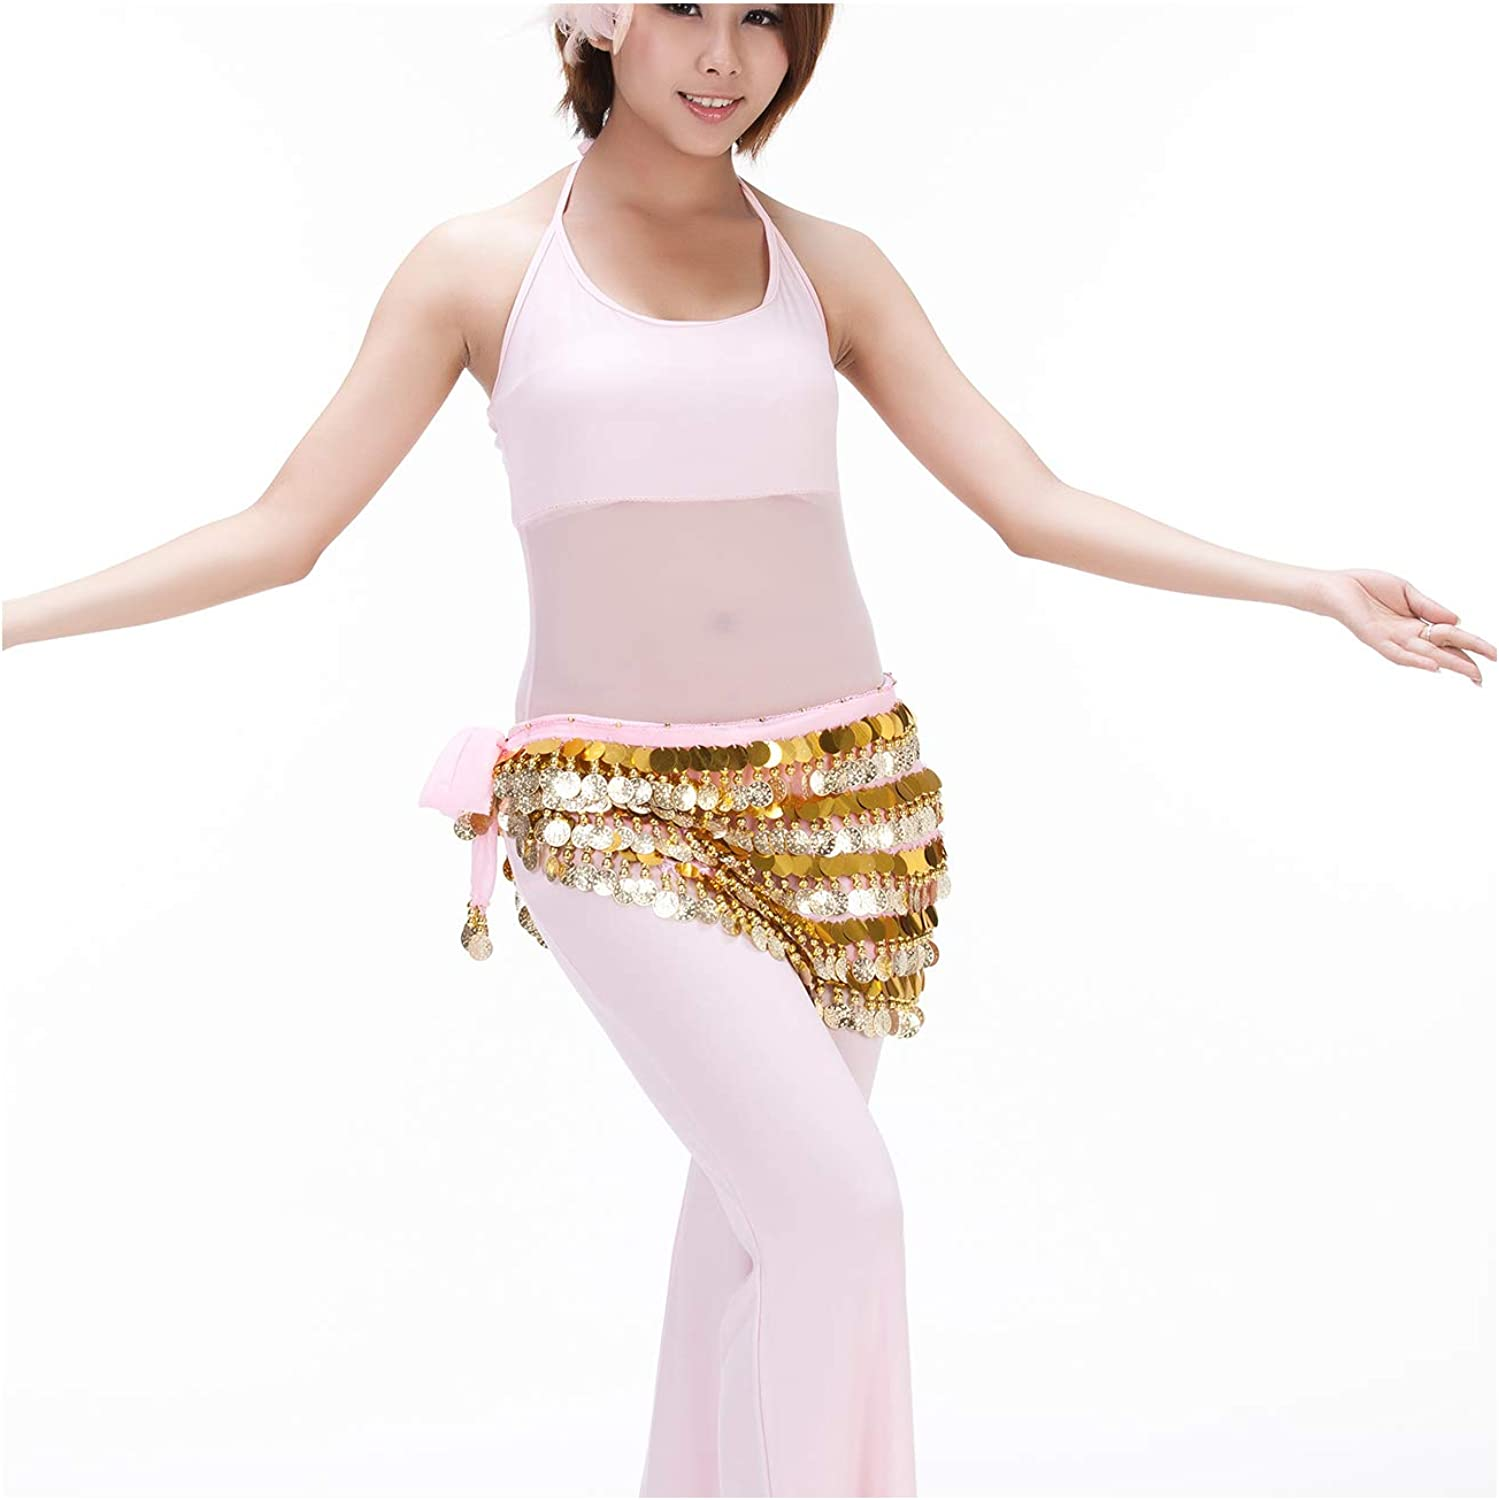 Women Belly Dancing Hip Scarf with 288 Gold Ringing Coins 5 Rows Sequins Performance Skirt Wrap 59 Inch